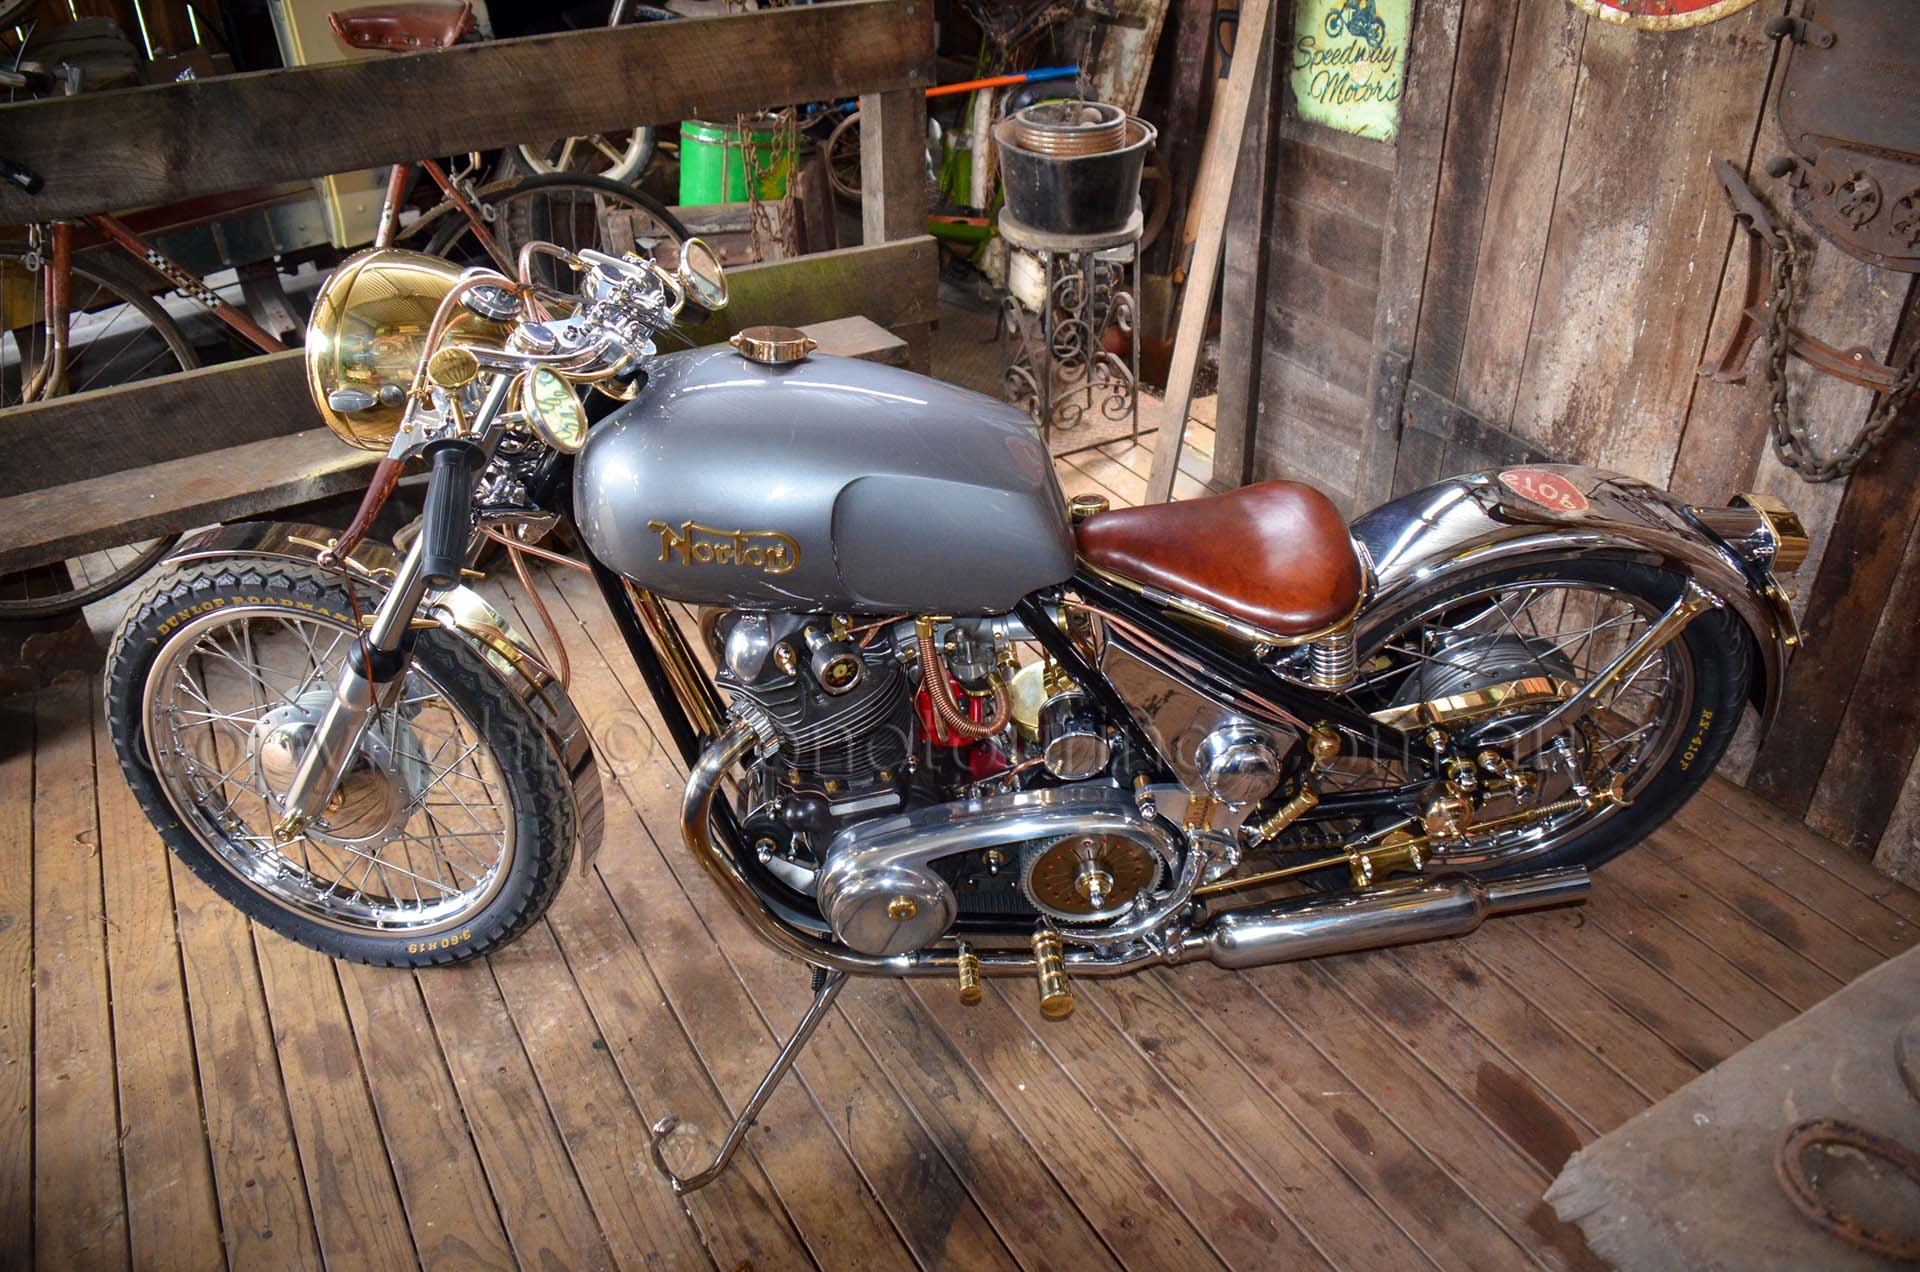 Isle of Man Norton Roadster fuel tank was highly modified